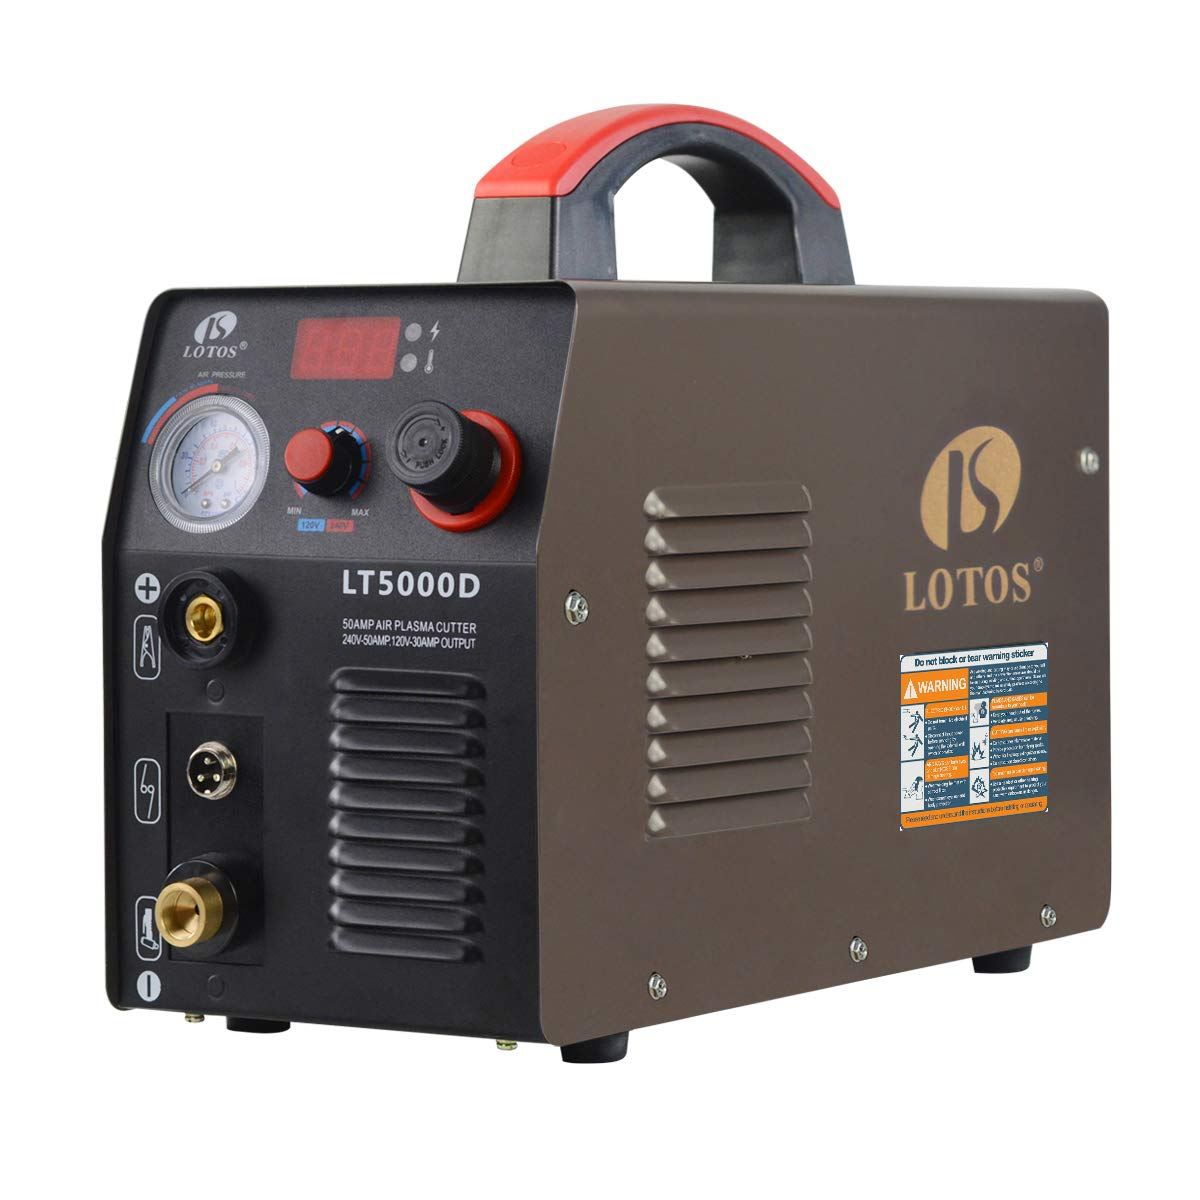 Top 10 Best Chinese Plasma Cutter Reviews in 2021 1